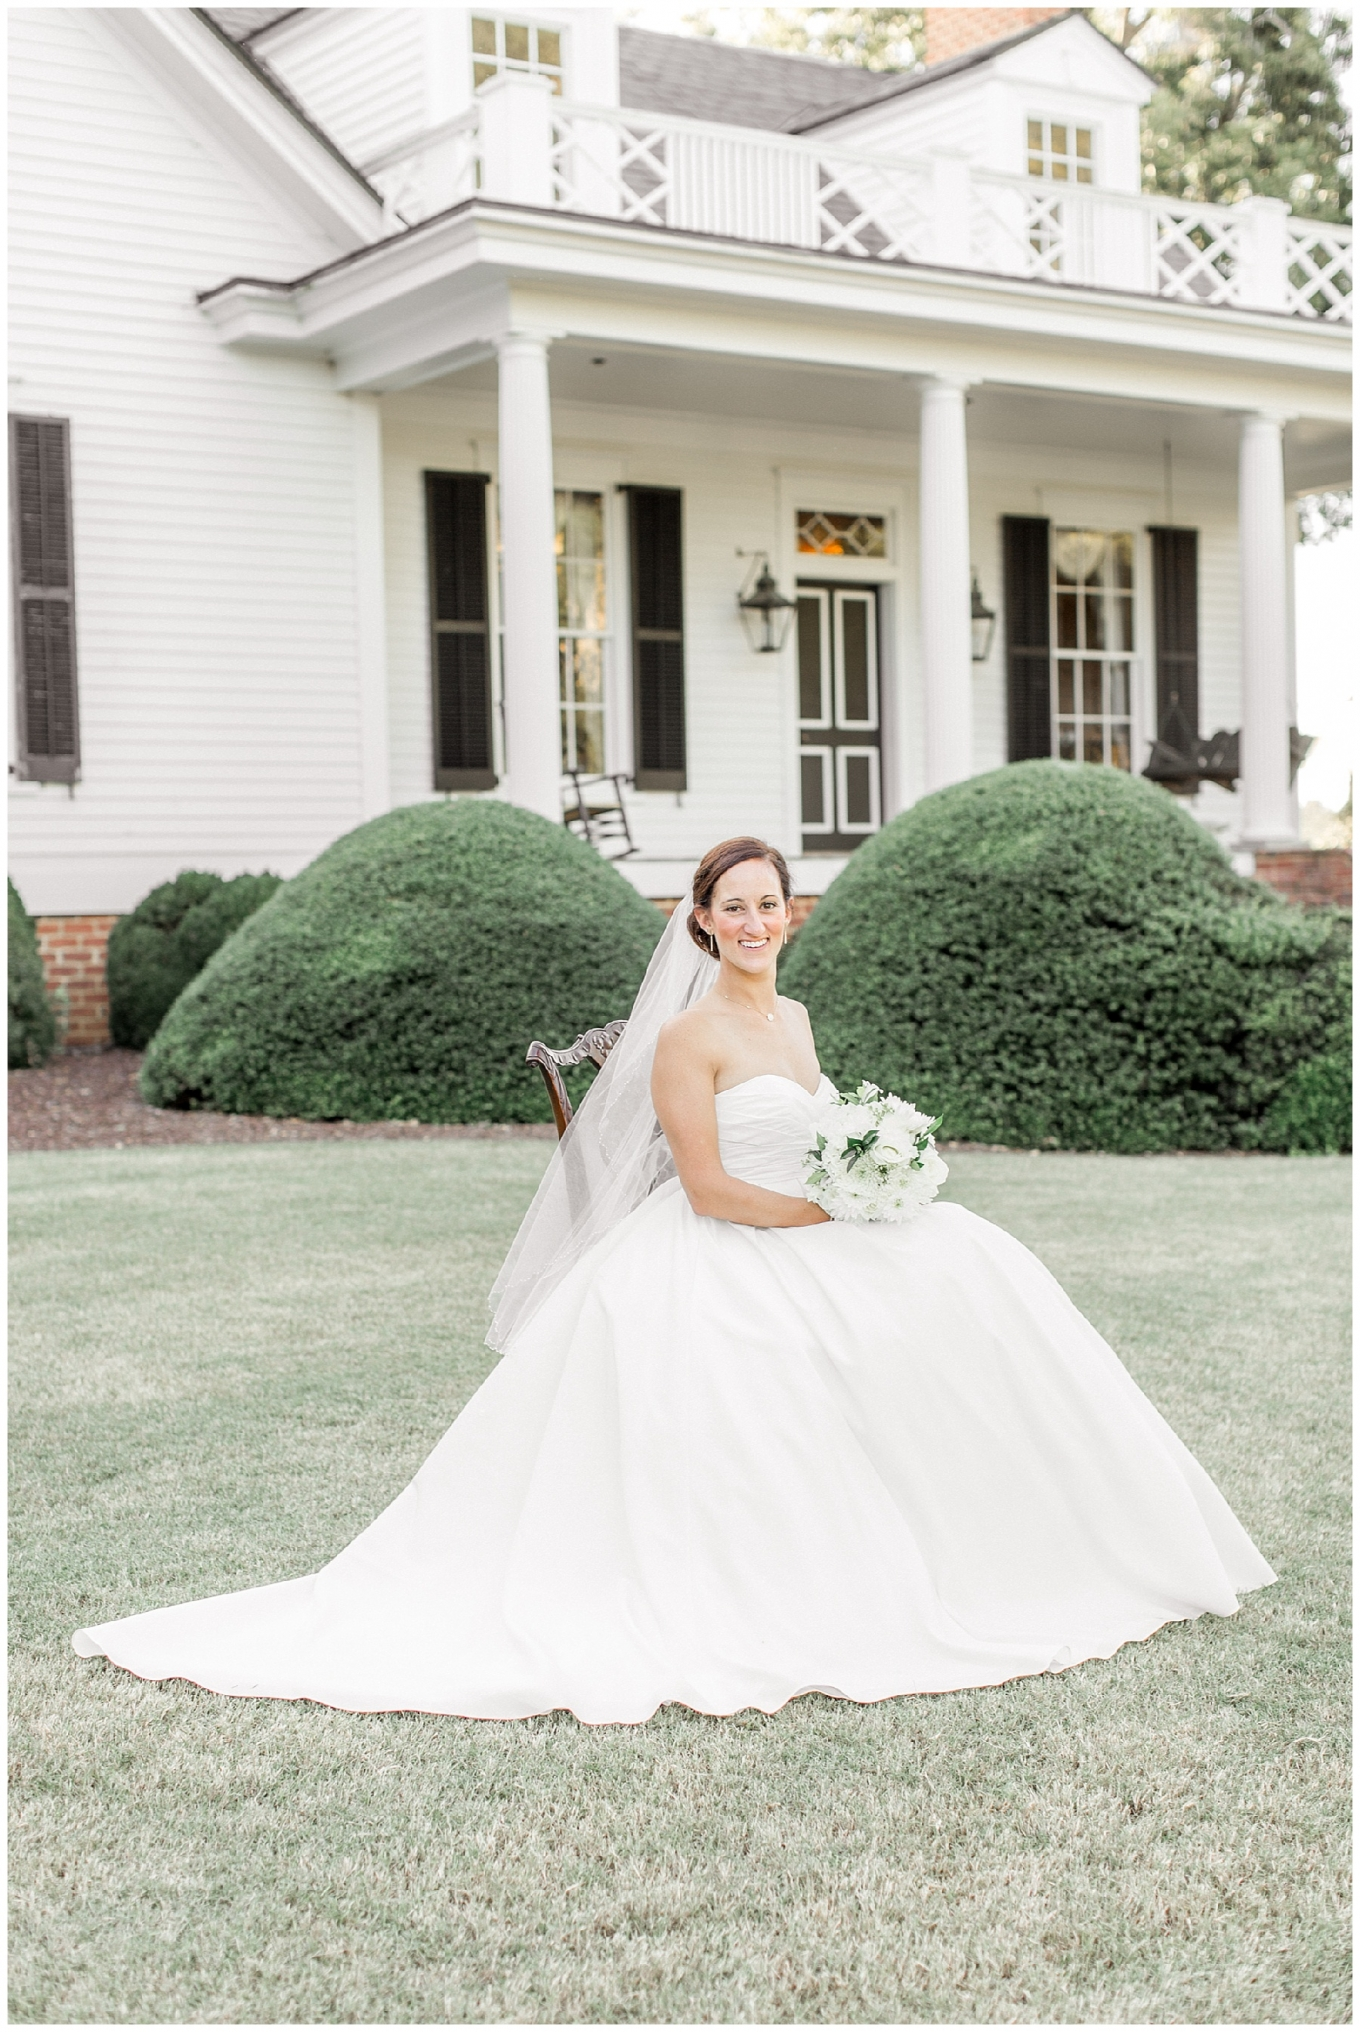 Sarah Joyner Bridal Portrait Session Tiffany L Johnson